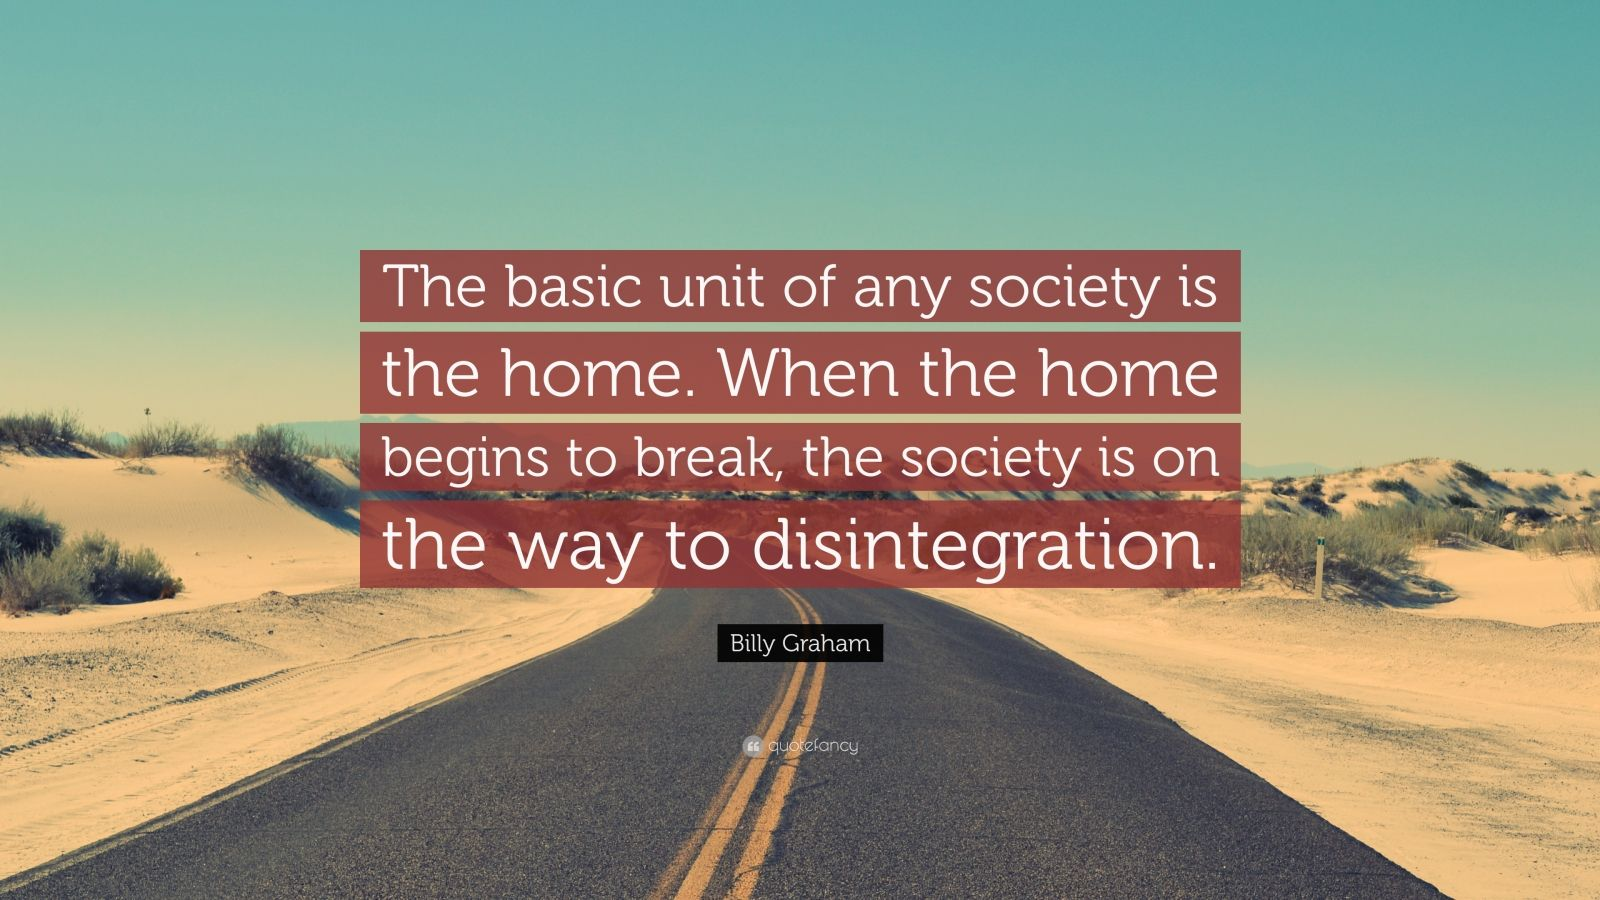 """Billy Graham Quote: """"The basic unit of any society is the home. When the home begins to break, the society is on the way to disintegration."""""""